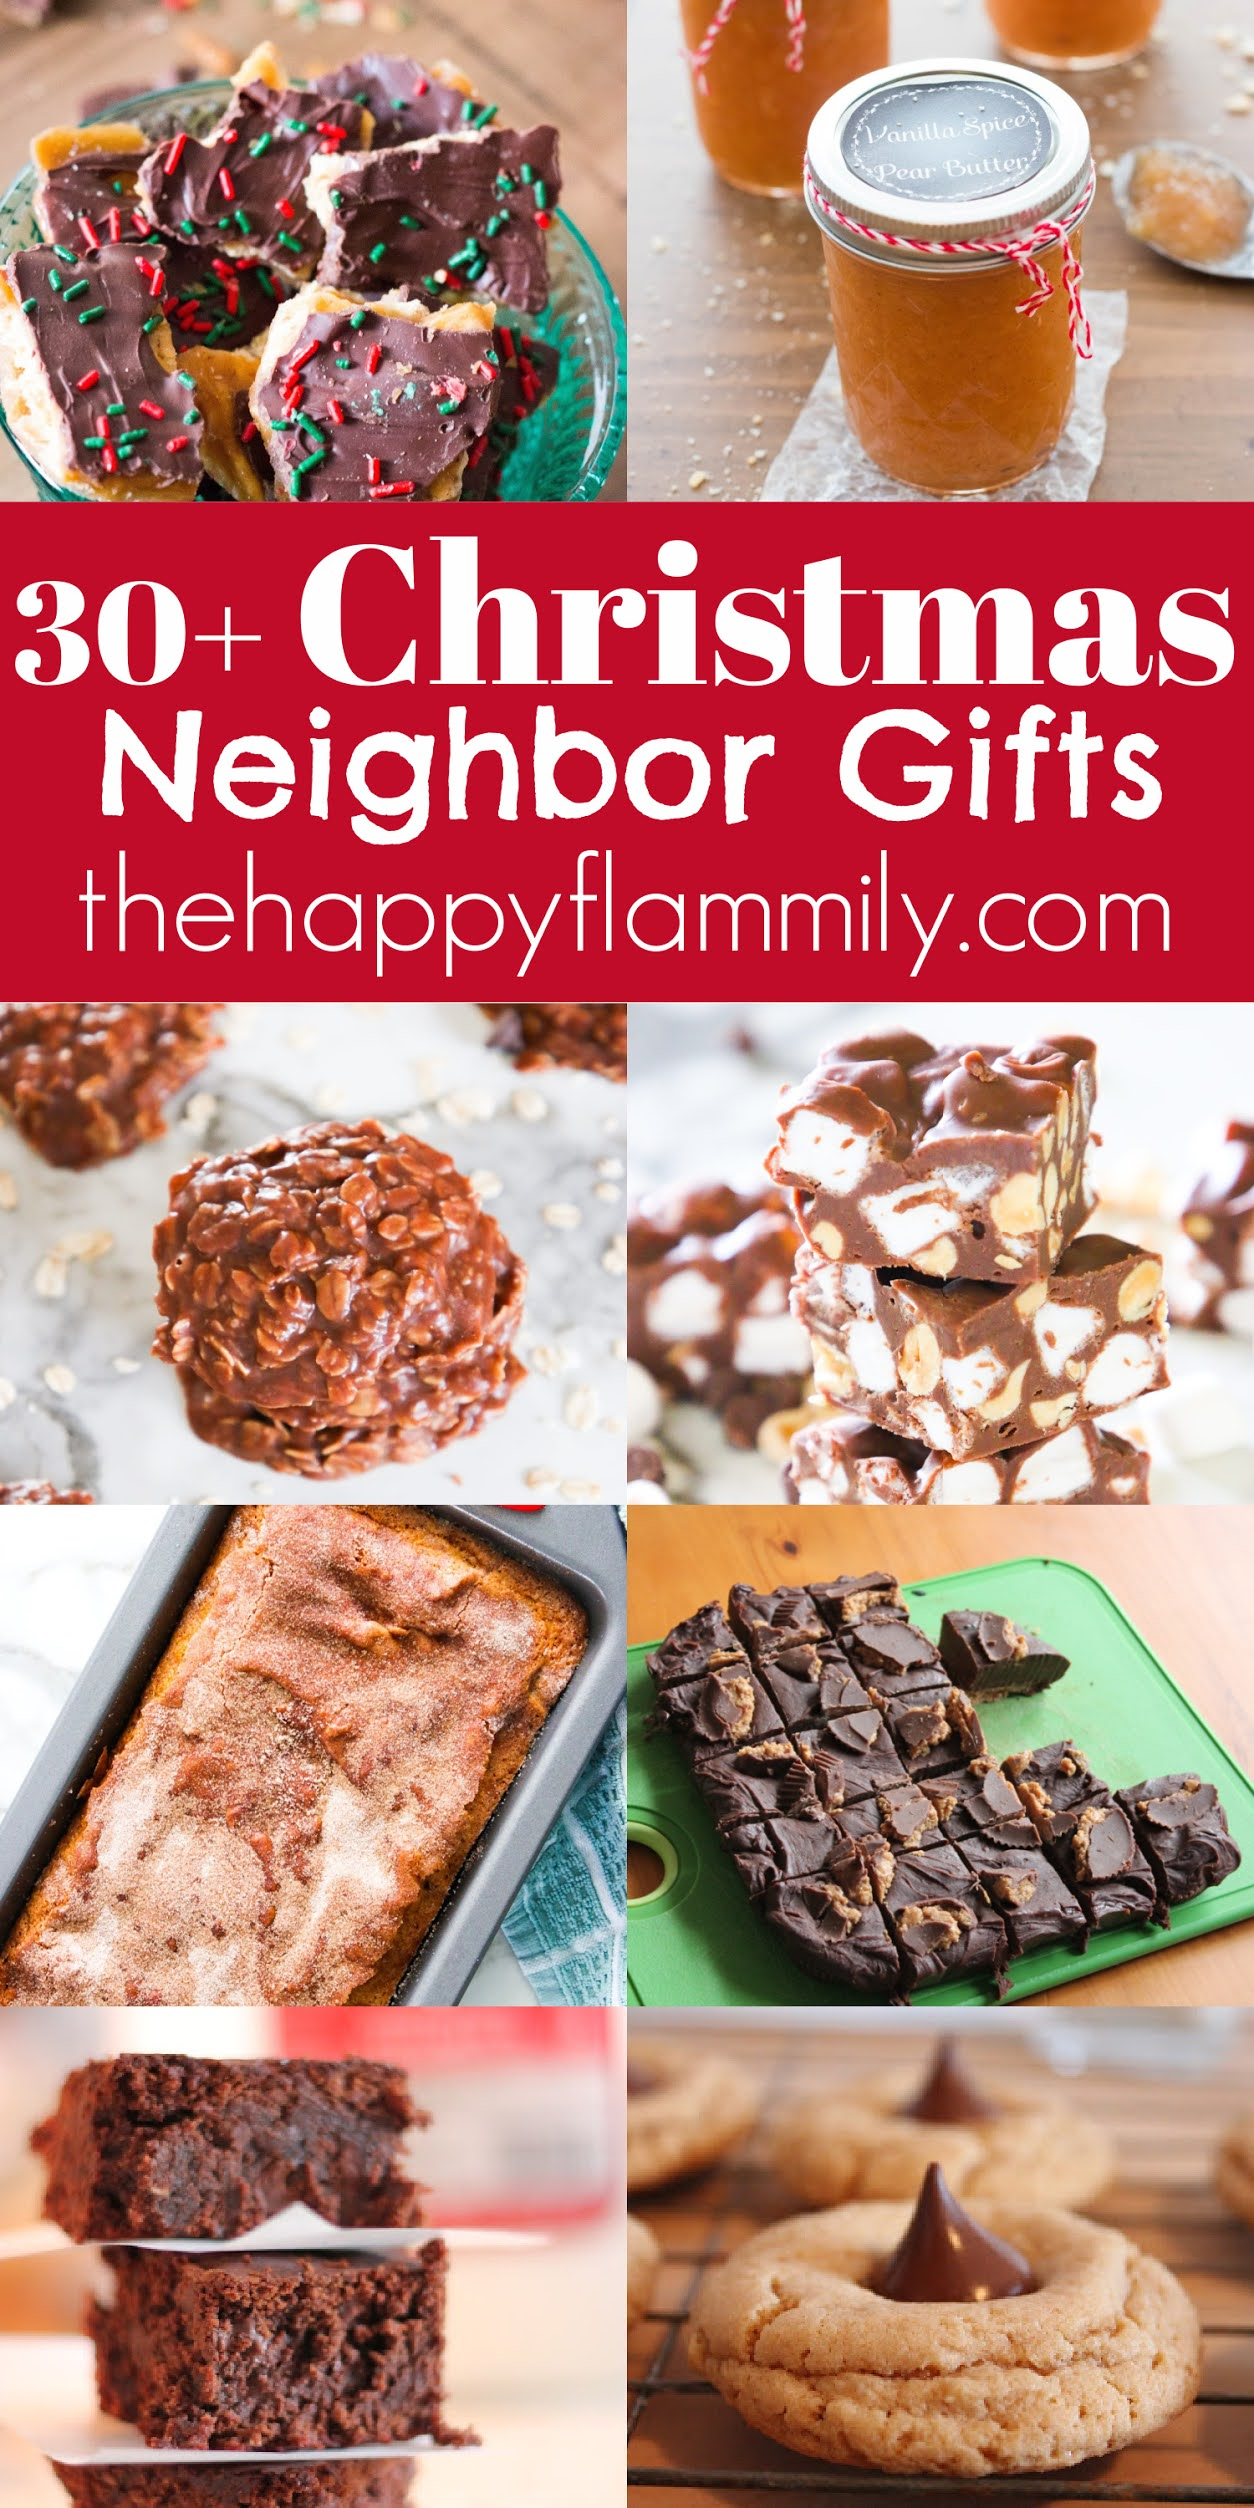 Christmas neighbor gifts. Christmas gifts for neighbors 2020. What is a goof gift to give your neighbor. Christmas treats for neighbors. Christmas sayings for neighbor gifts. Best neighbor ever gifts. Gift ideas for helpful neighbor. Neighbor Christmas gift etiquette. Thank you gifts for neighbors. #gifts #holiday #Chrsitmas #neighborgifts #treats #desserts